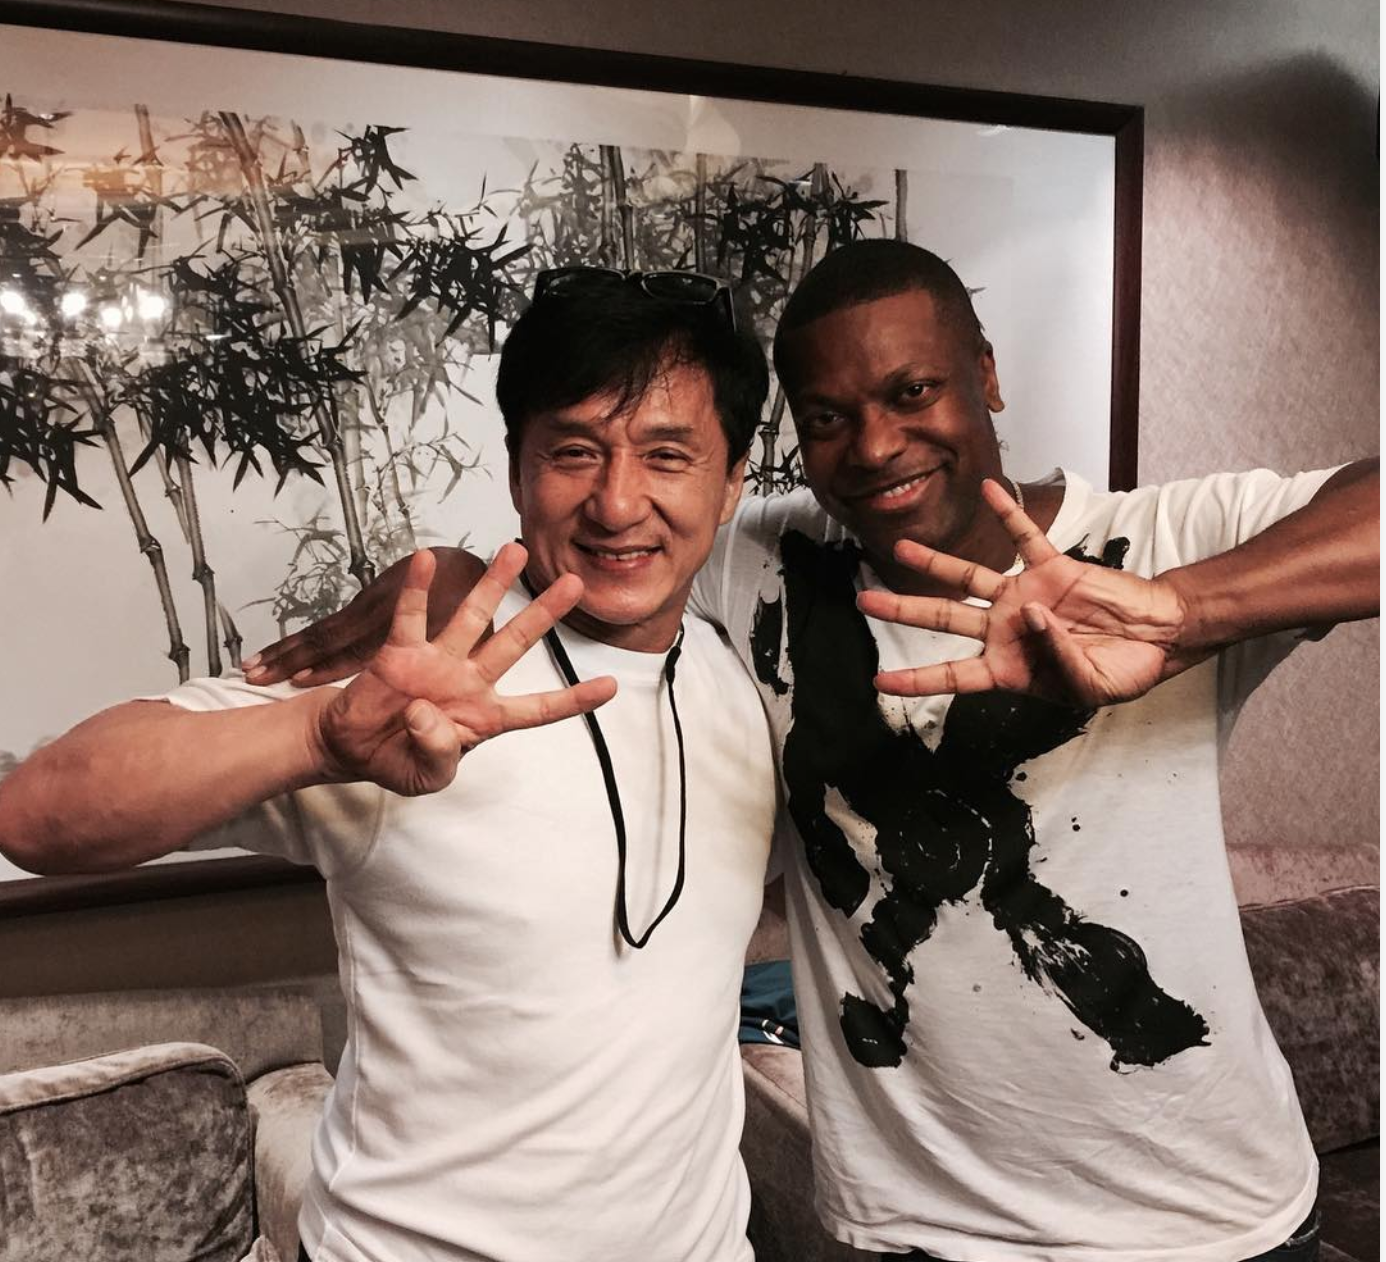 rush hour 4 release